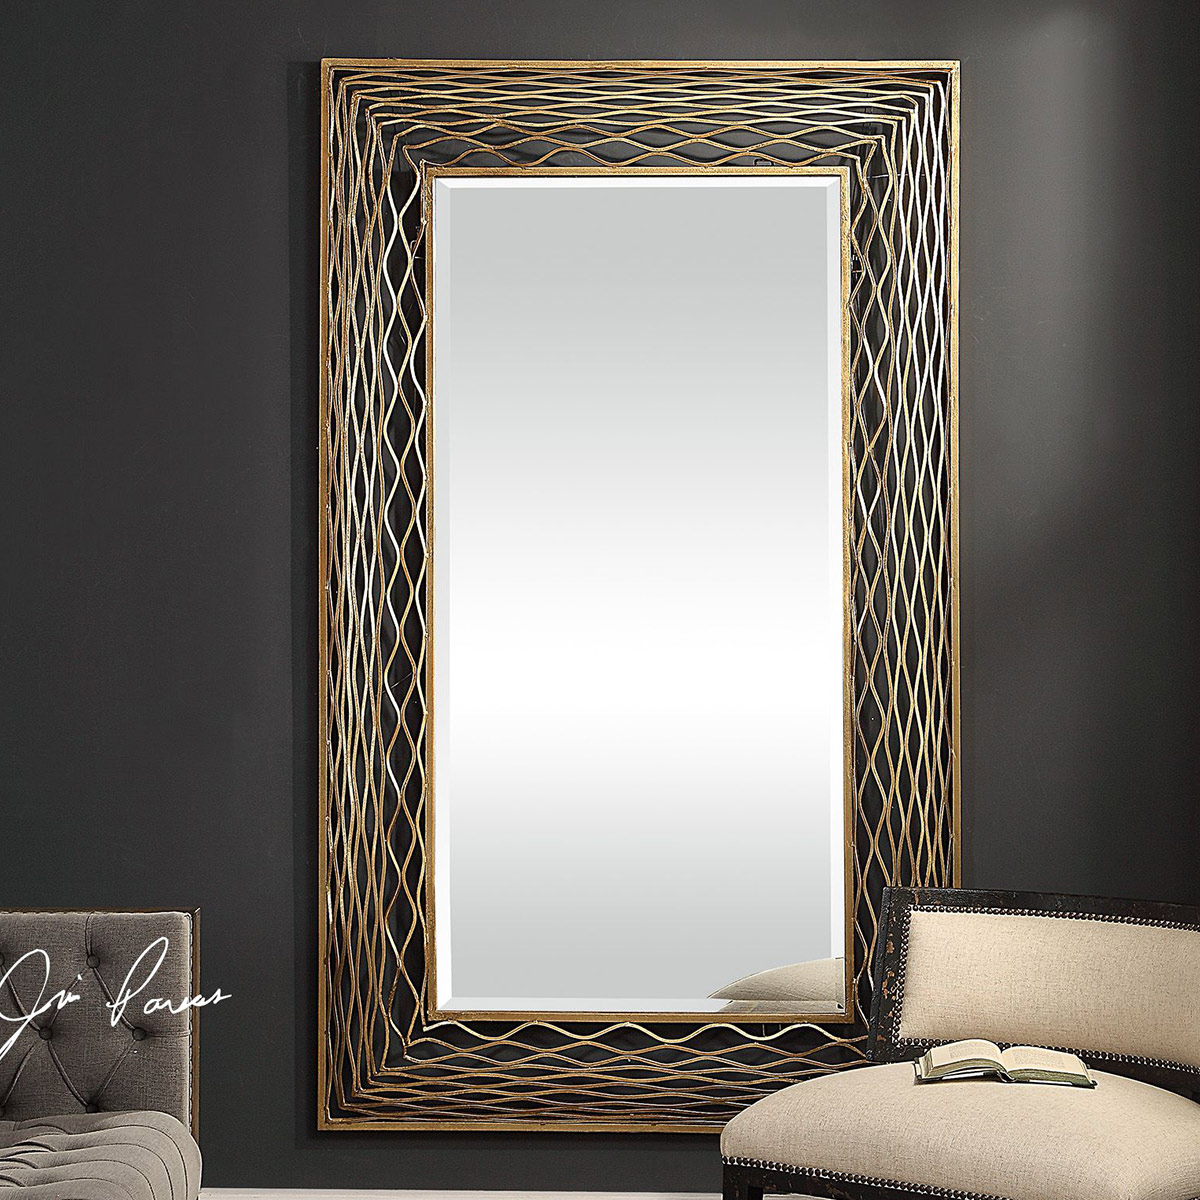 Coastal Mirrors Galtero Gold Wall Mirror